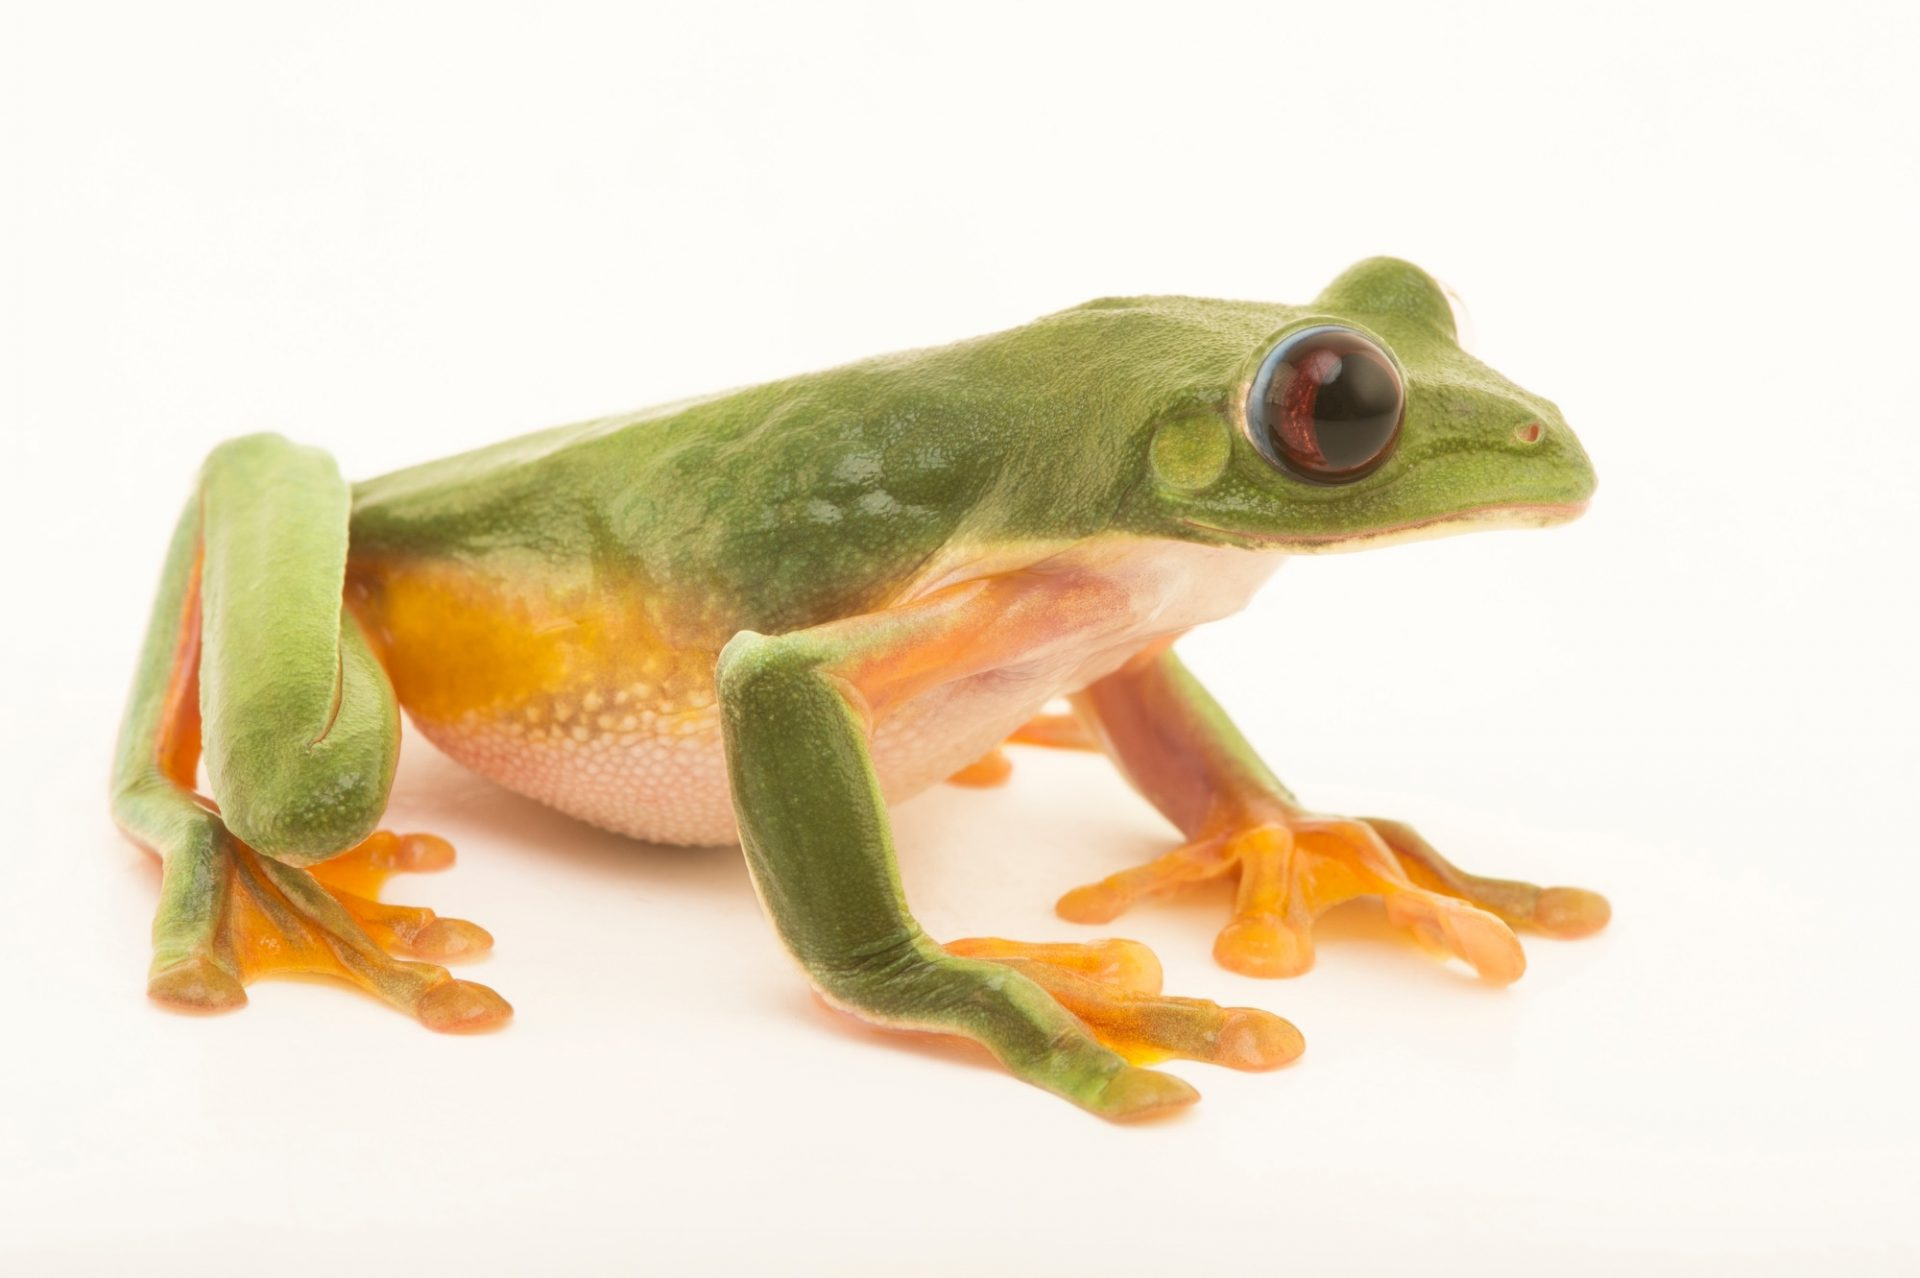 Picture of a gliding tree frog (Agalychnis spurrelli) from the Atlanta Botanical Garden.